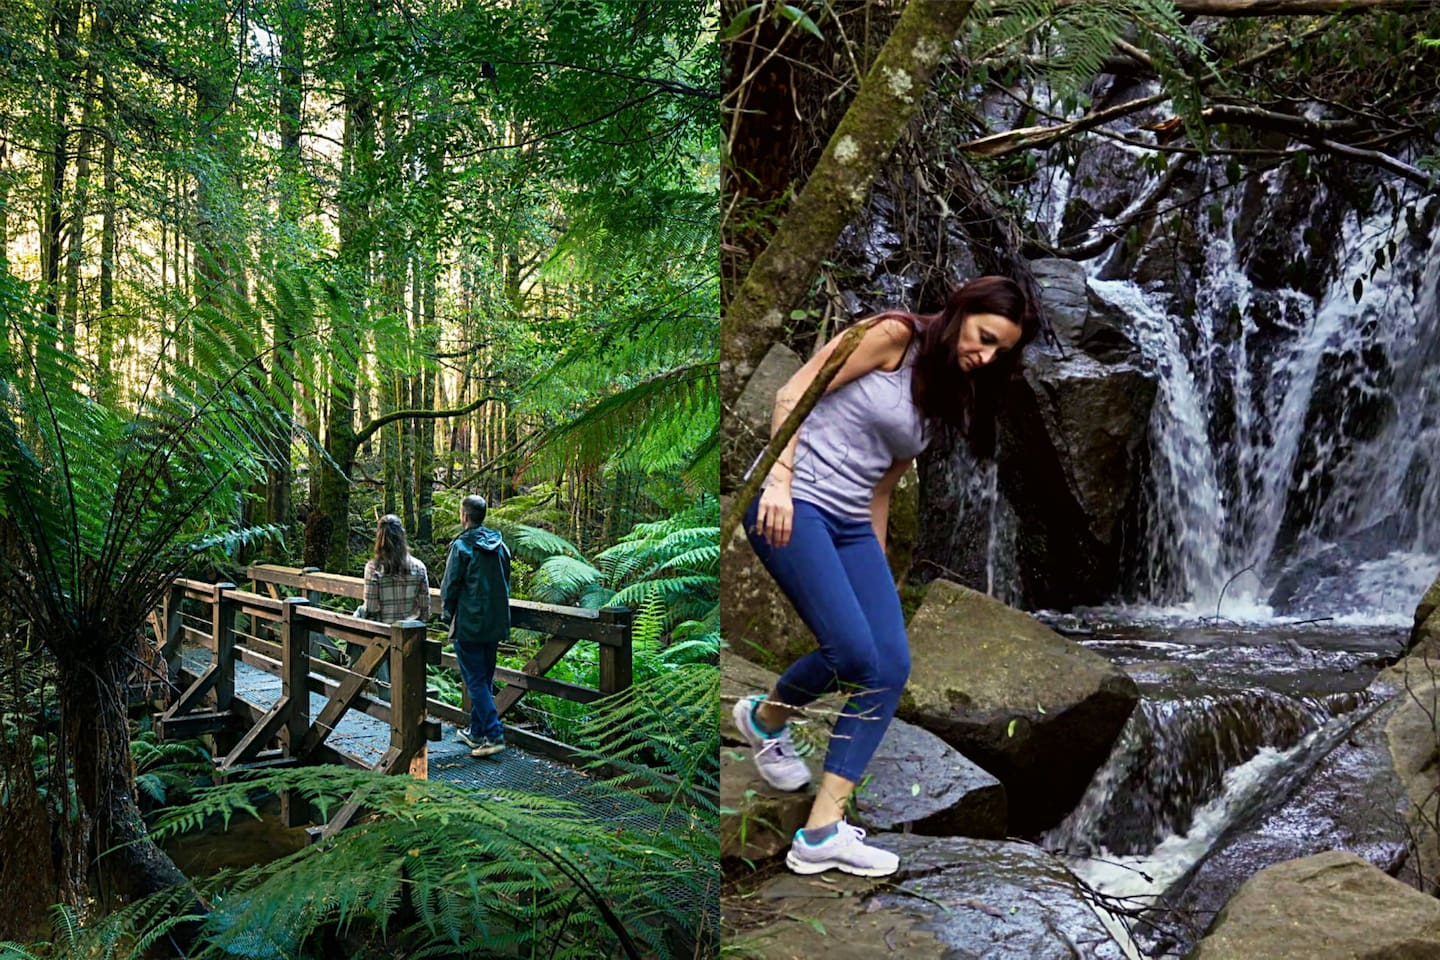 40 minutes by car: Explore the beautiful Forrest bush lands of Melbourne. The Dandenong Rangers. Here you find the hidden Olinda Falls.